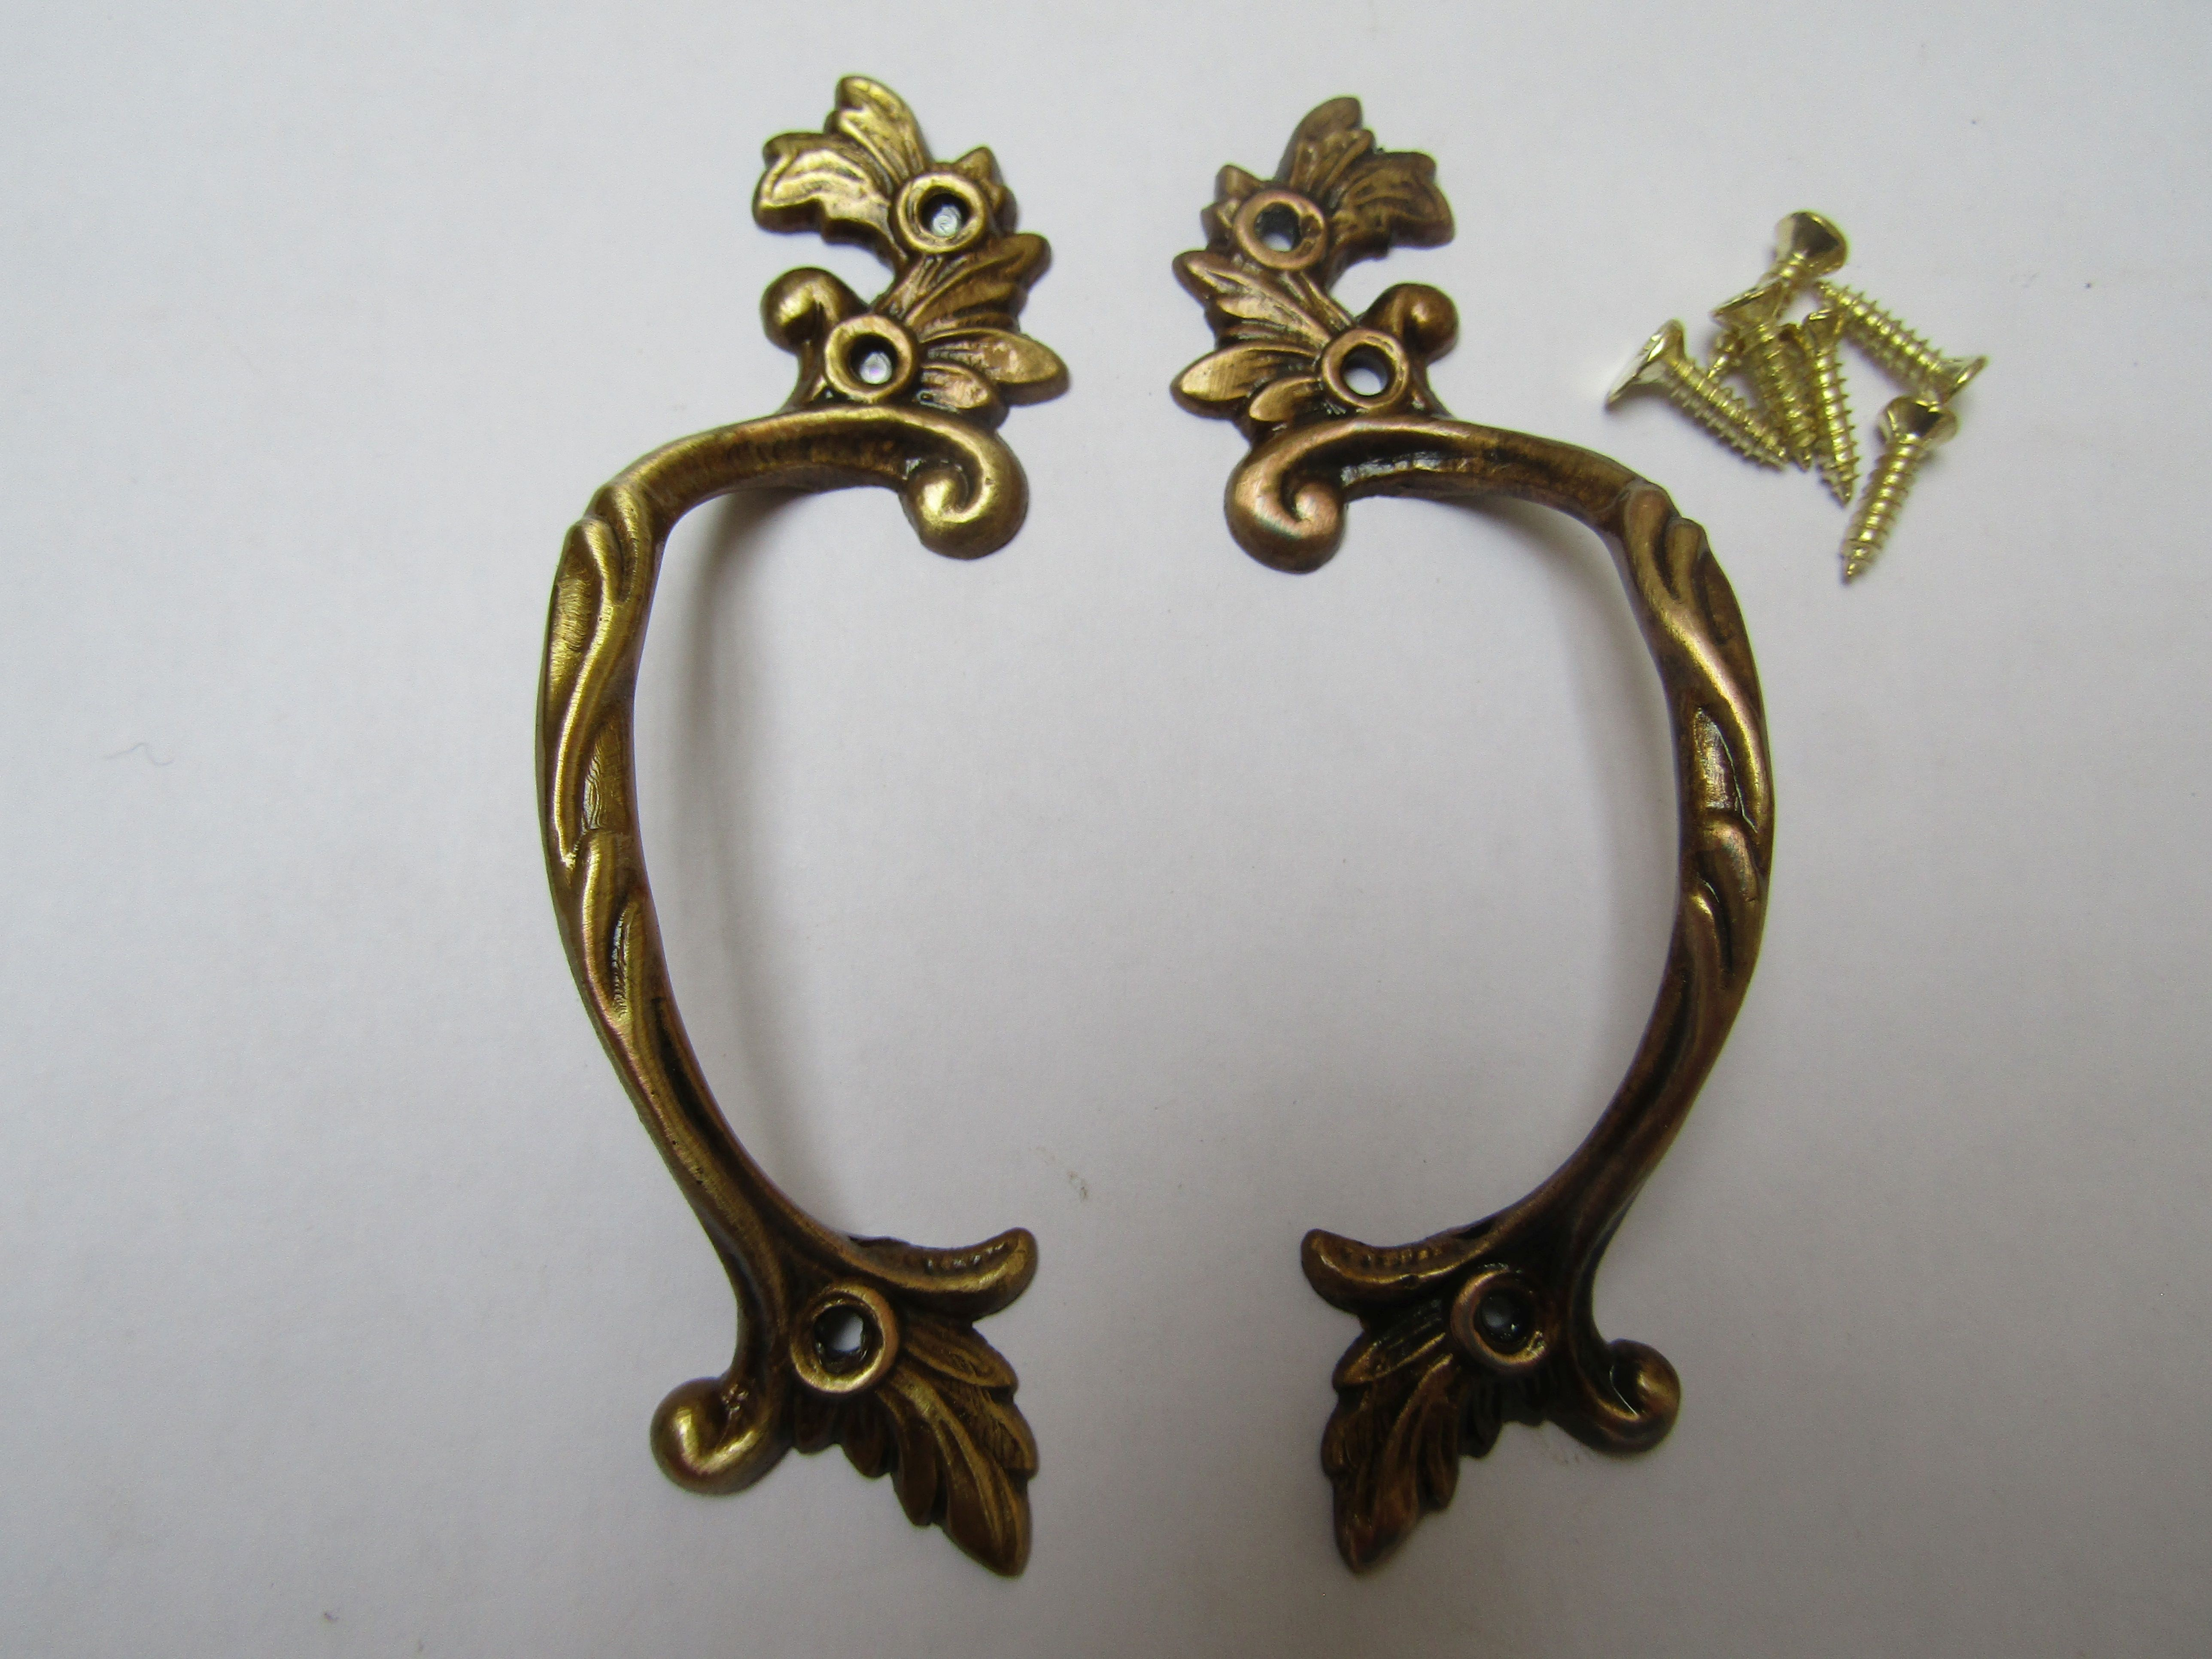 VINTAGE ANTIQUE STYLE SOLID BRASS PAIR OF CABINET DOOR HANDLES ....DRAWER PULLS